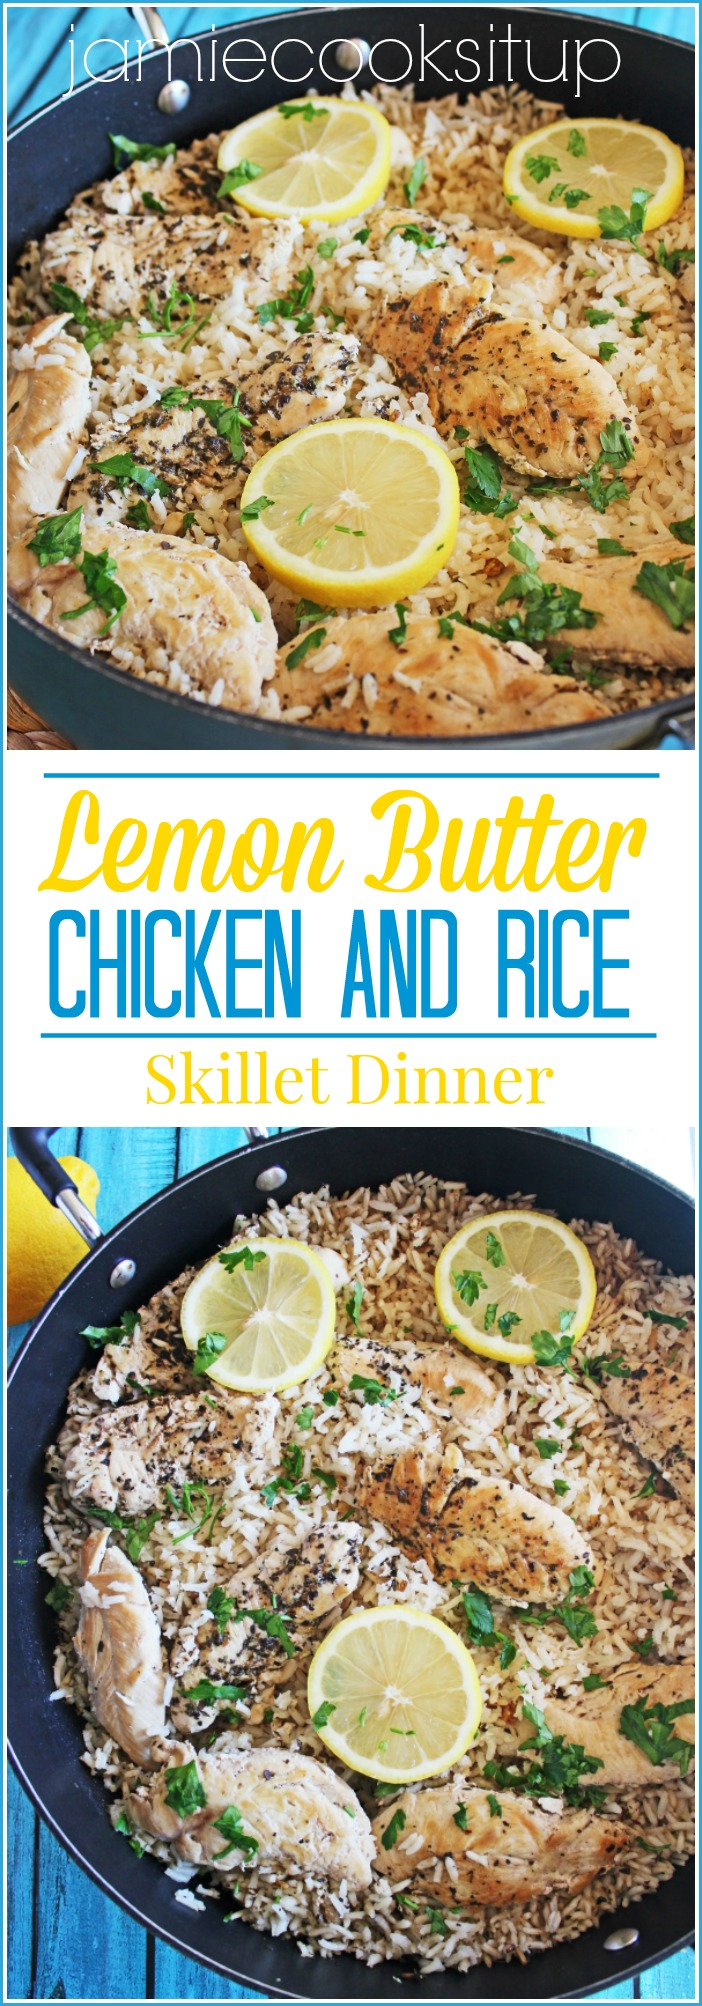 Lemon Butter Chicken and Rice Skillet Dinner from Jamie Cooks It Up!